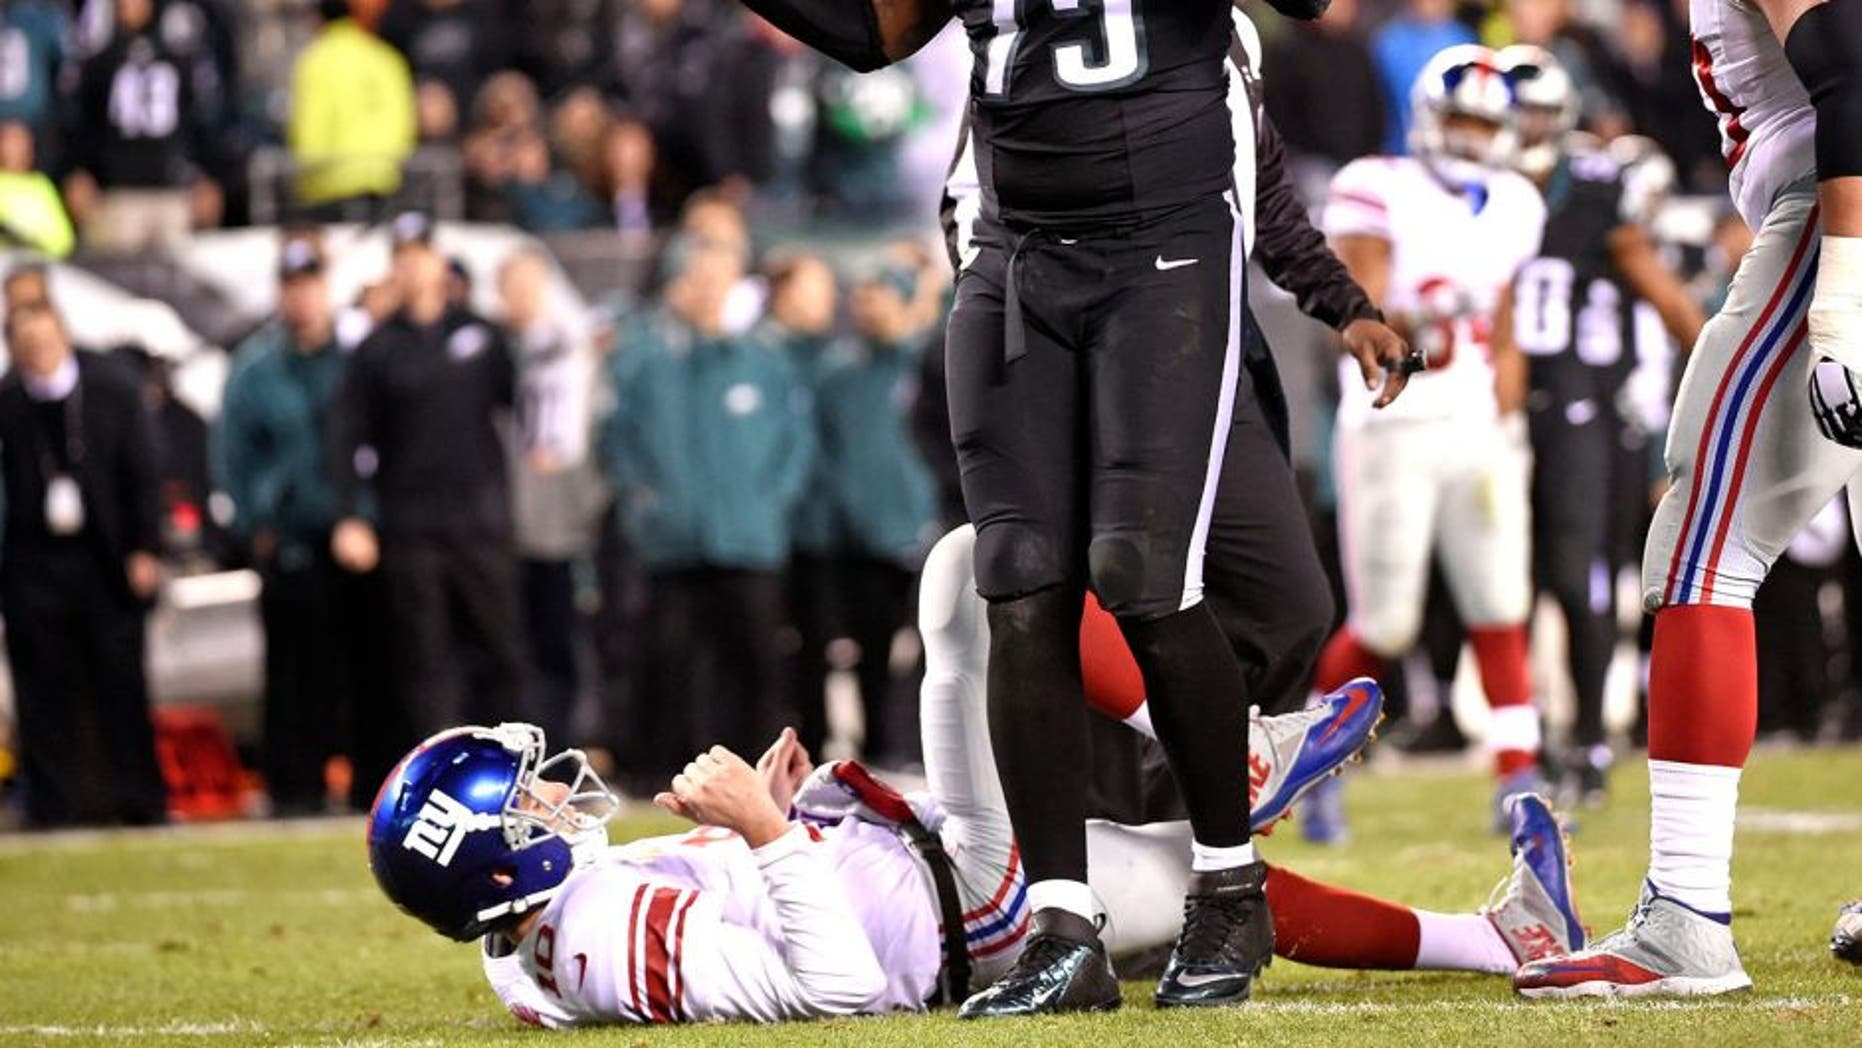 Oct 19, 2015; Philadelphia, PA, USA; Philadelphia Eagles defensive end Vinny Curry (75) reacts after pressuring New York Giants quarterback Eli Manning (10) into intentional grounding during the fourth quarter at Lincoln Financial Field. The Eagles defeated the Giants, 27-7. Mandatory Credit: Eric Hartline-USA TODAY Sports